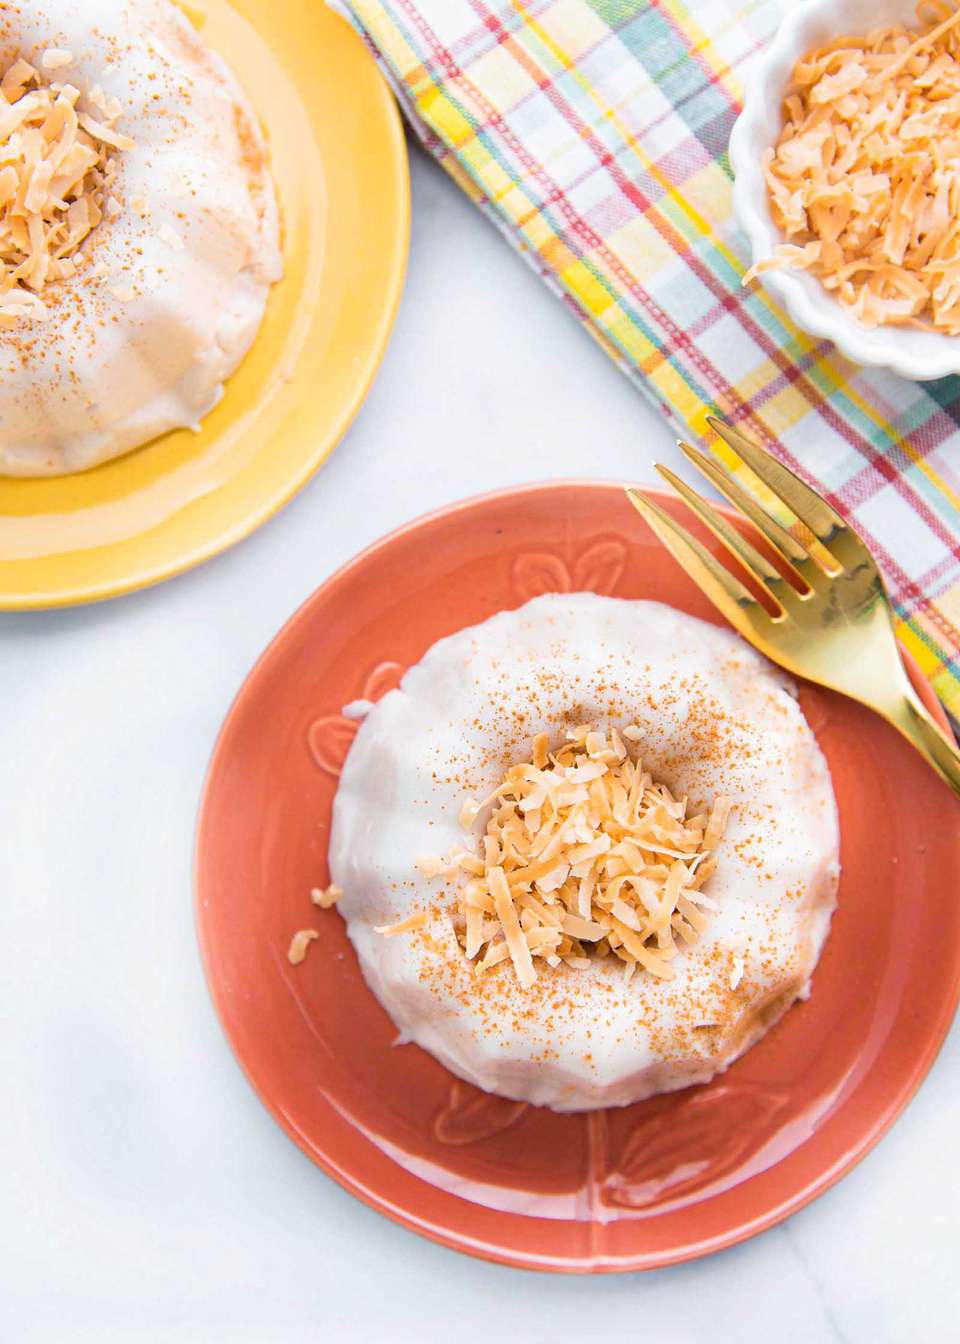 Vertical photo of two plates with coconut pudding with toasted, shredded coconut mounded inside the bundt shape. The coconut pudding is coated in ground cinnamon. The lower plate is coral and a gold fork is to the left of it, the plate in the upper left is light yellow. A small container of toasted shredded coconut is to the right of the coral plate. A striped dish cloth is underneath the coconut.